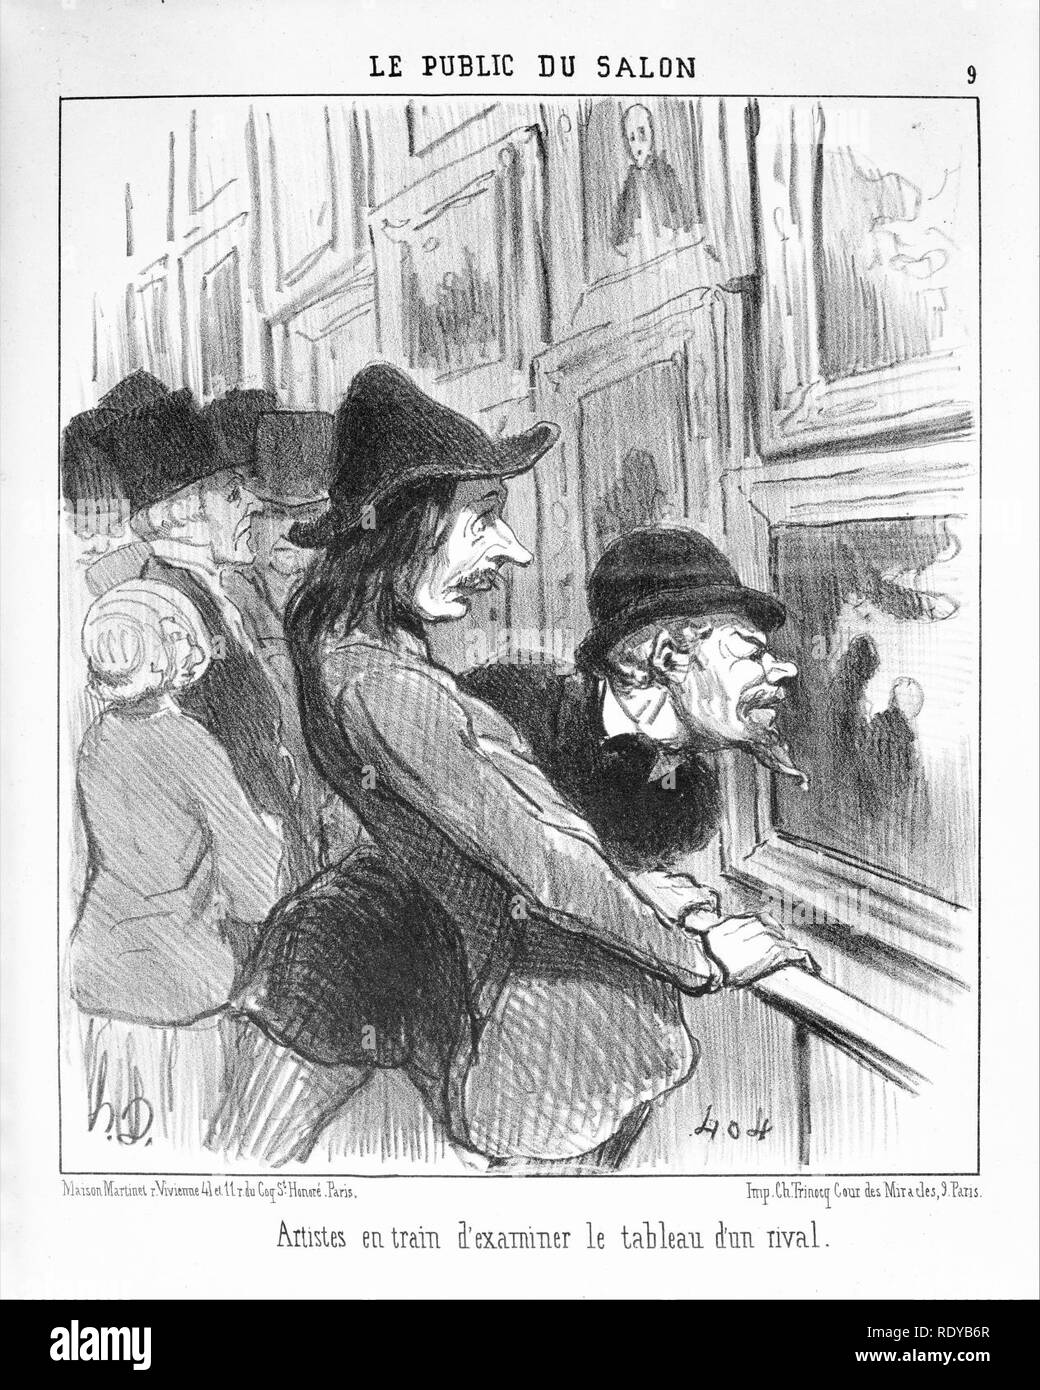 Artists Examining the Work of a Rival (Artistes en train d'examiner le tableau d'un rival), from Le Public du Salon, published in Le Charivari, May 14, 1852 - Stock Image